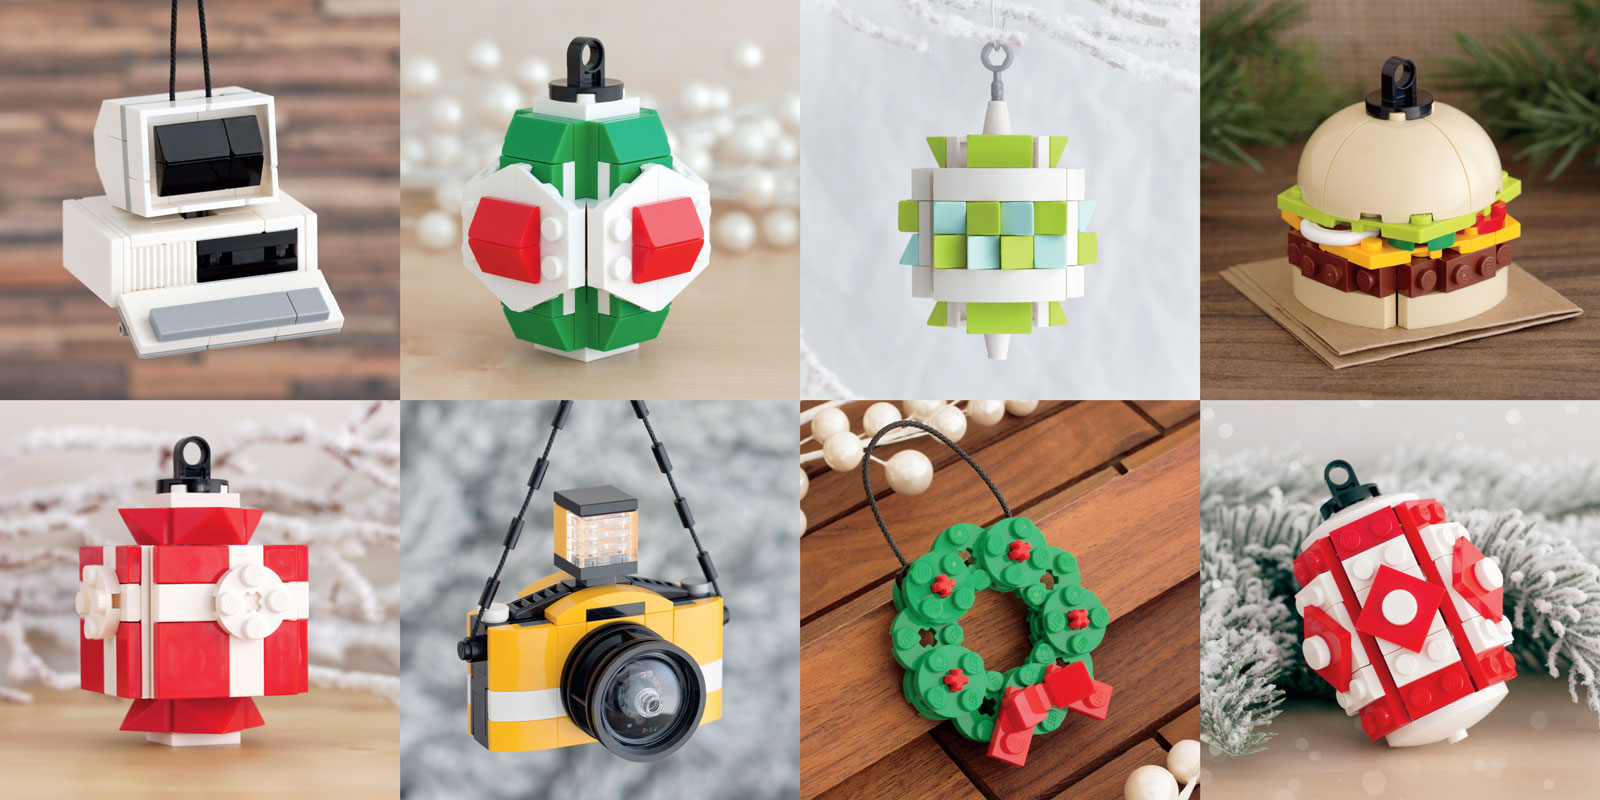 Lego Christmas Ornaments.Ready For Christmas How About A Lego Christmas What Cha